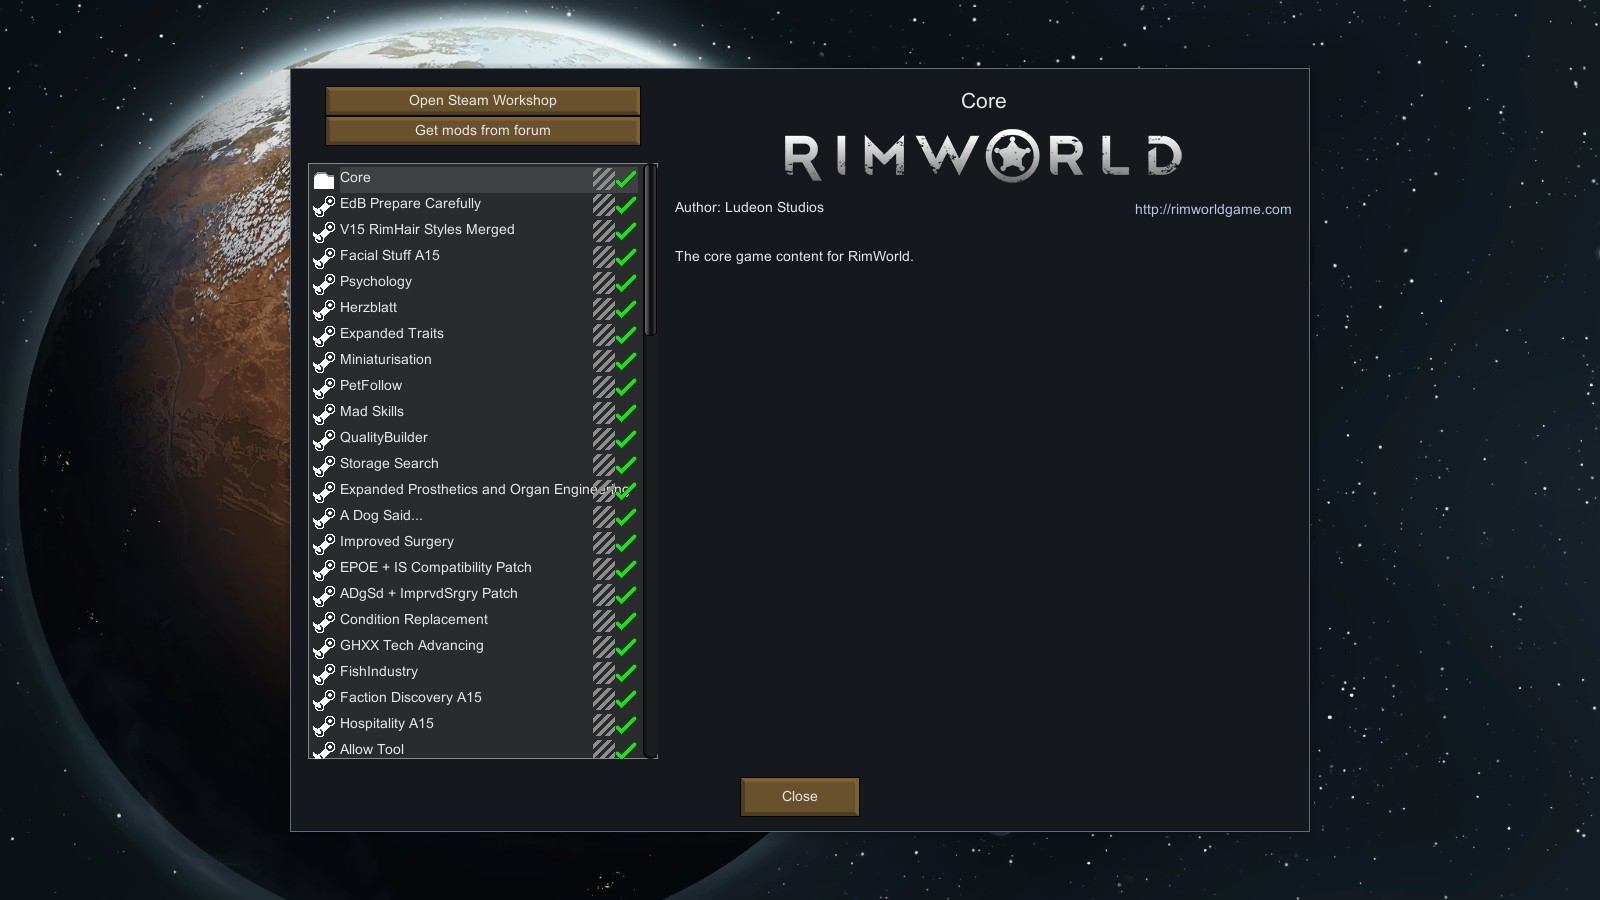 One of my mods might be causing tons of incidents to occur